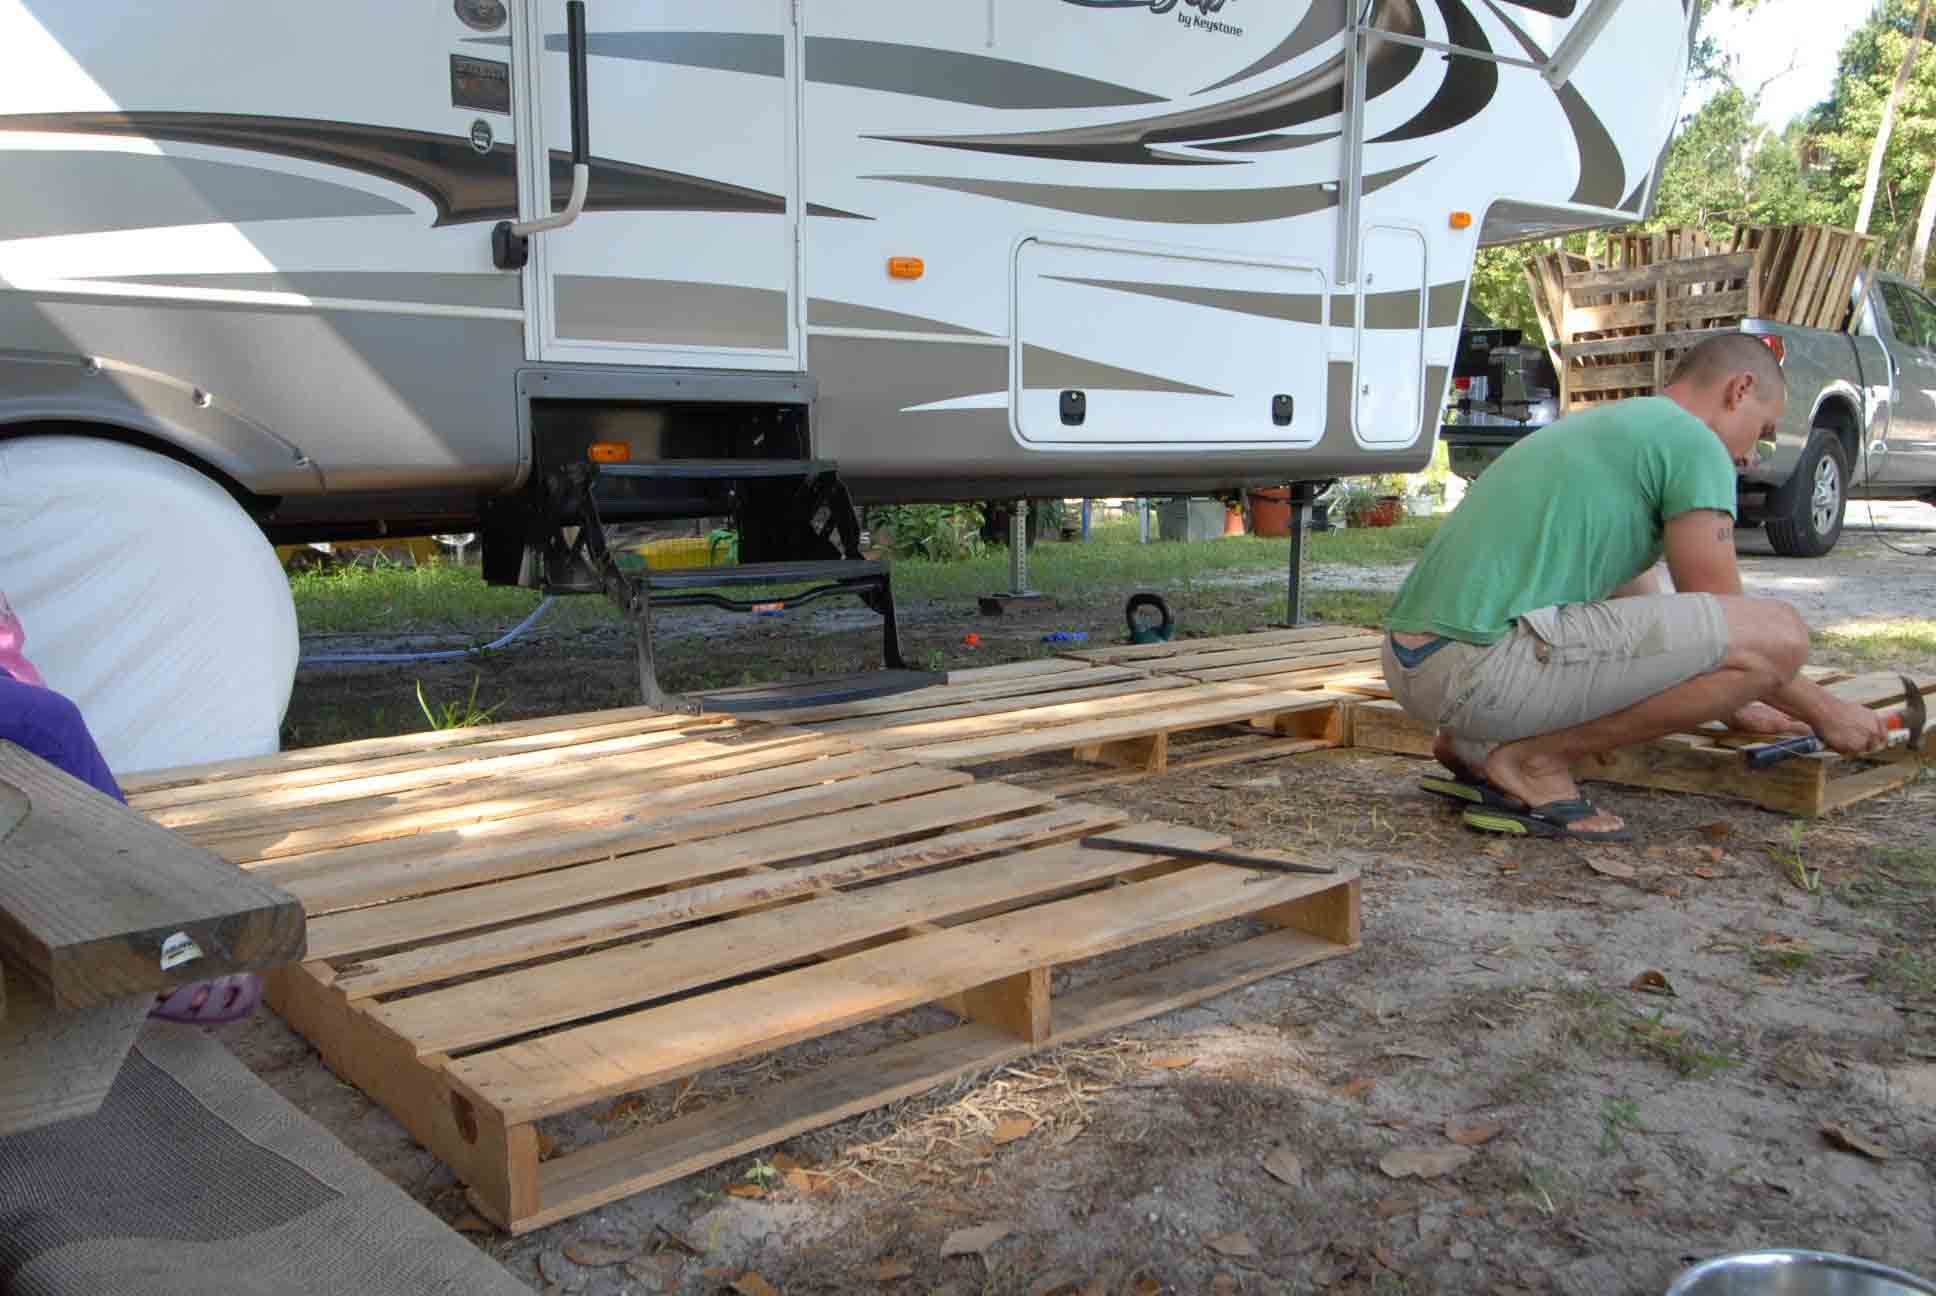 Portable Deck How To Build A Portable Deck For Rv Outdoorscart